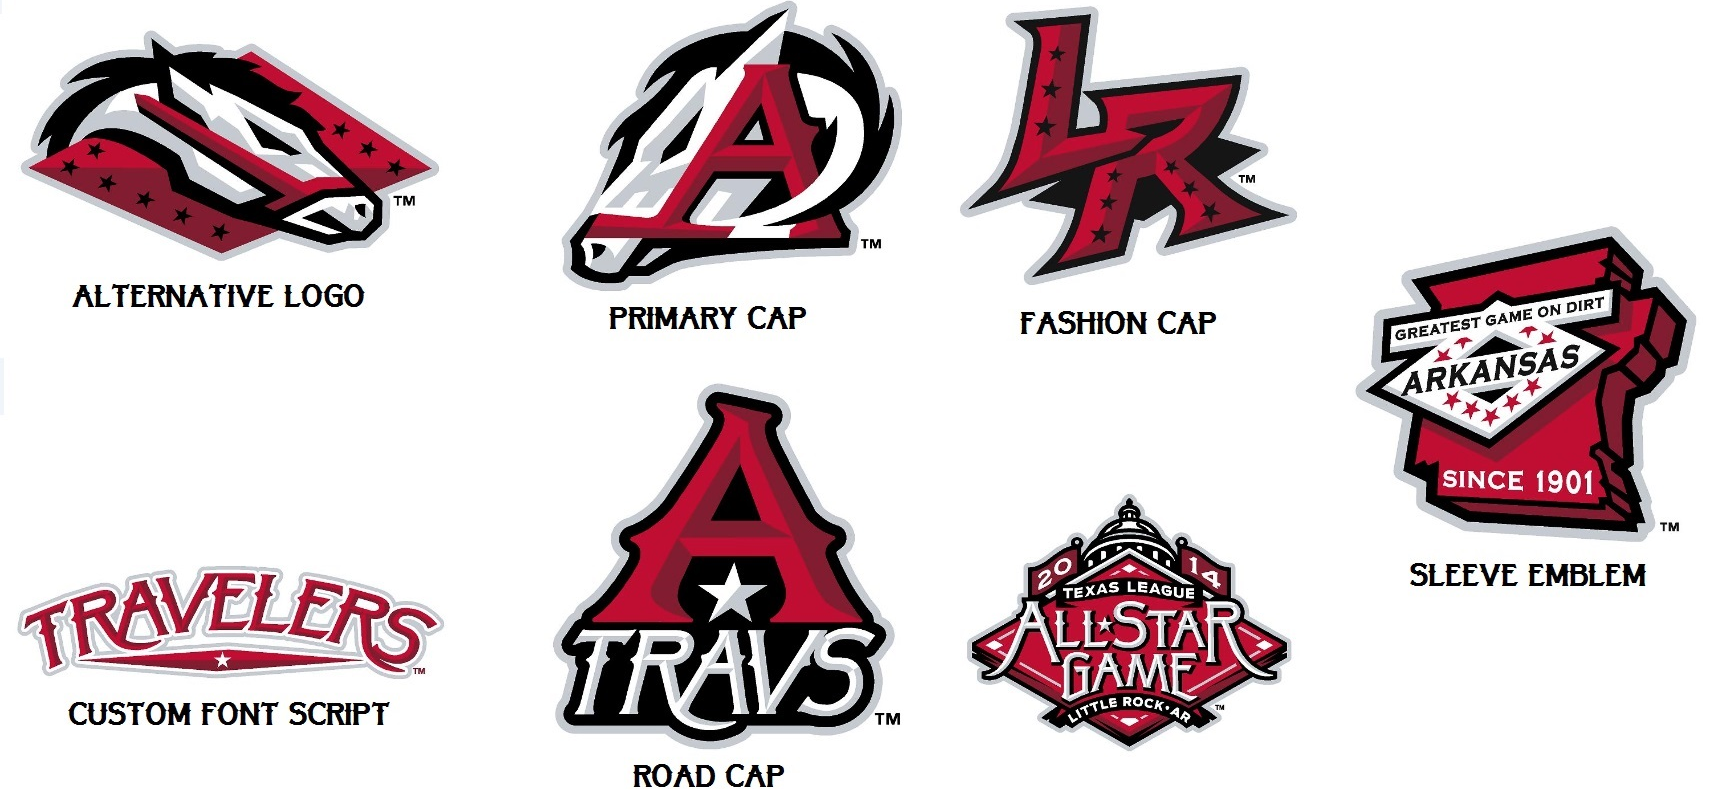 New Logo for Arkansas Travelers by Brandiose.